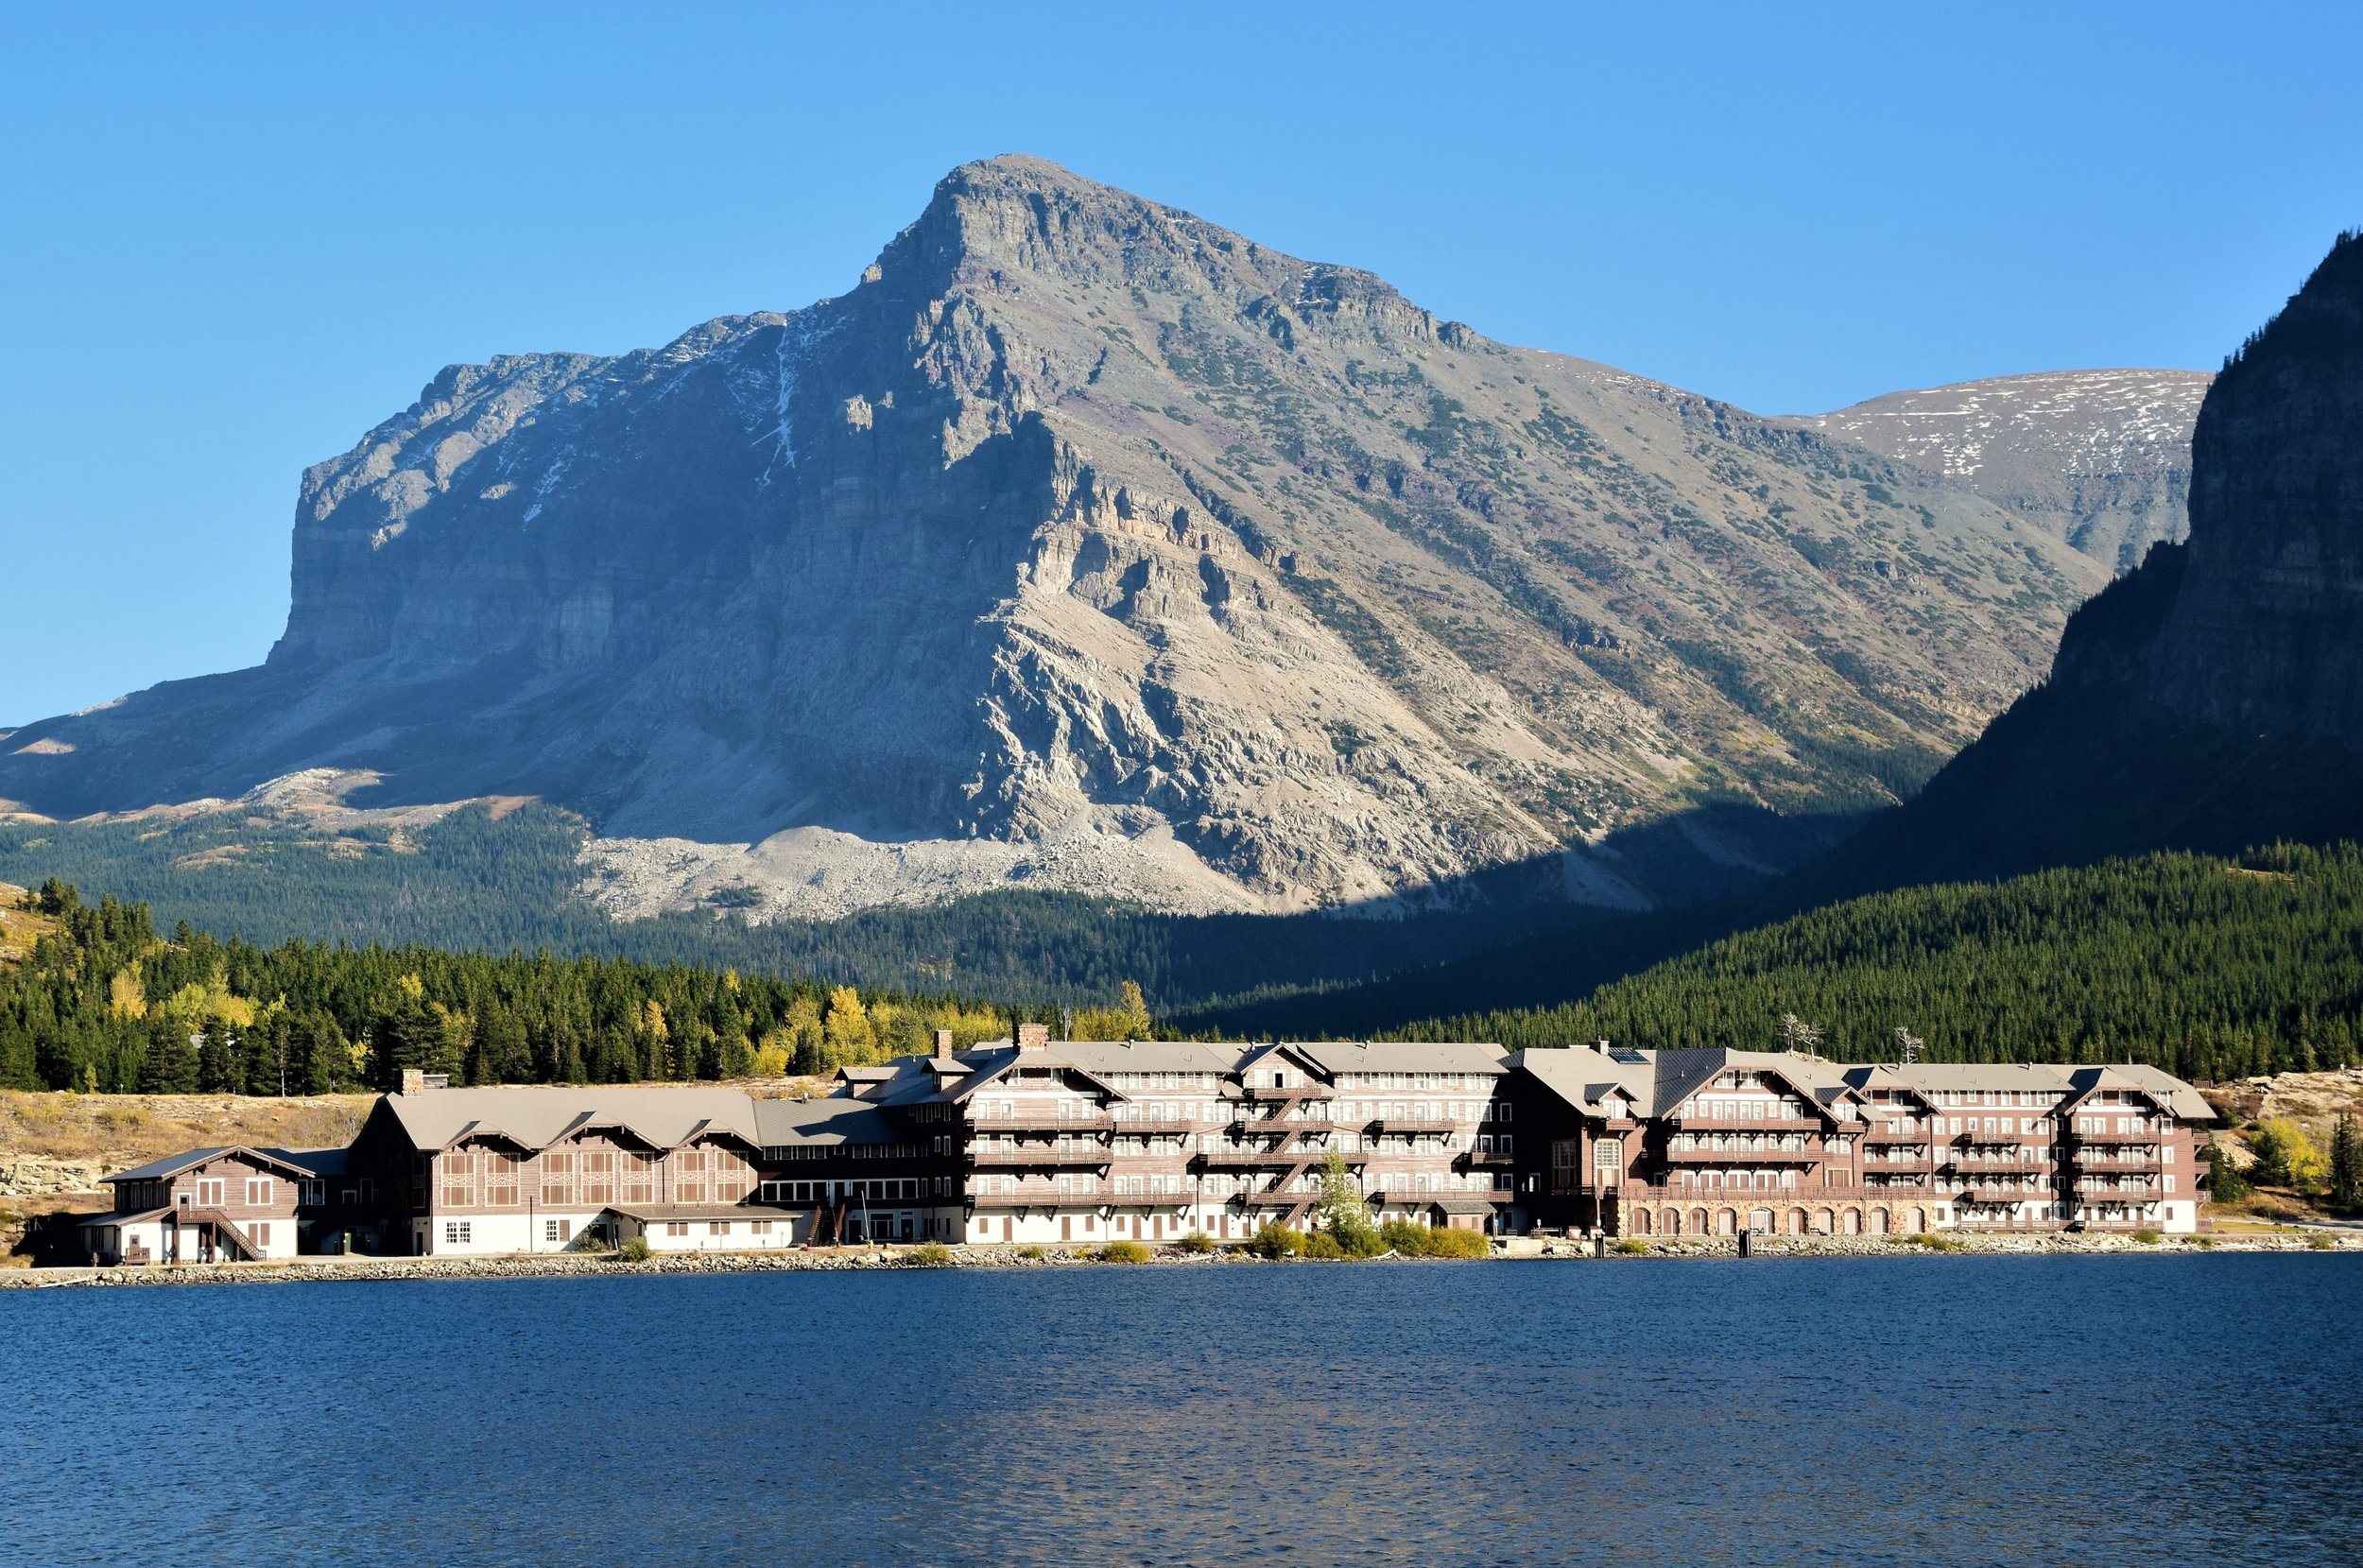 Many Glacier Hotel,Swiftcurrent Lake